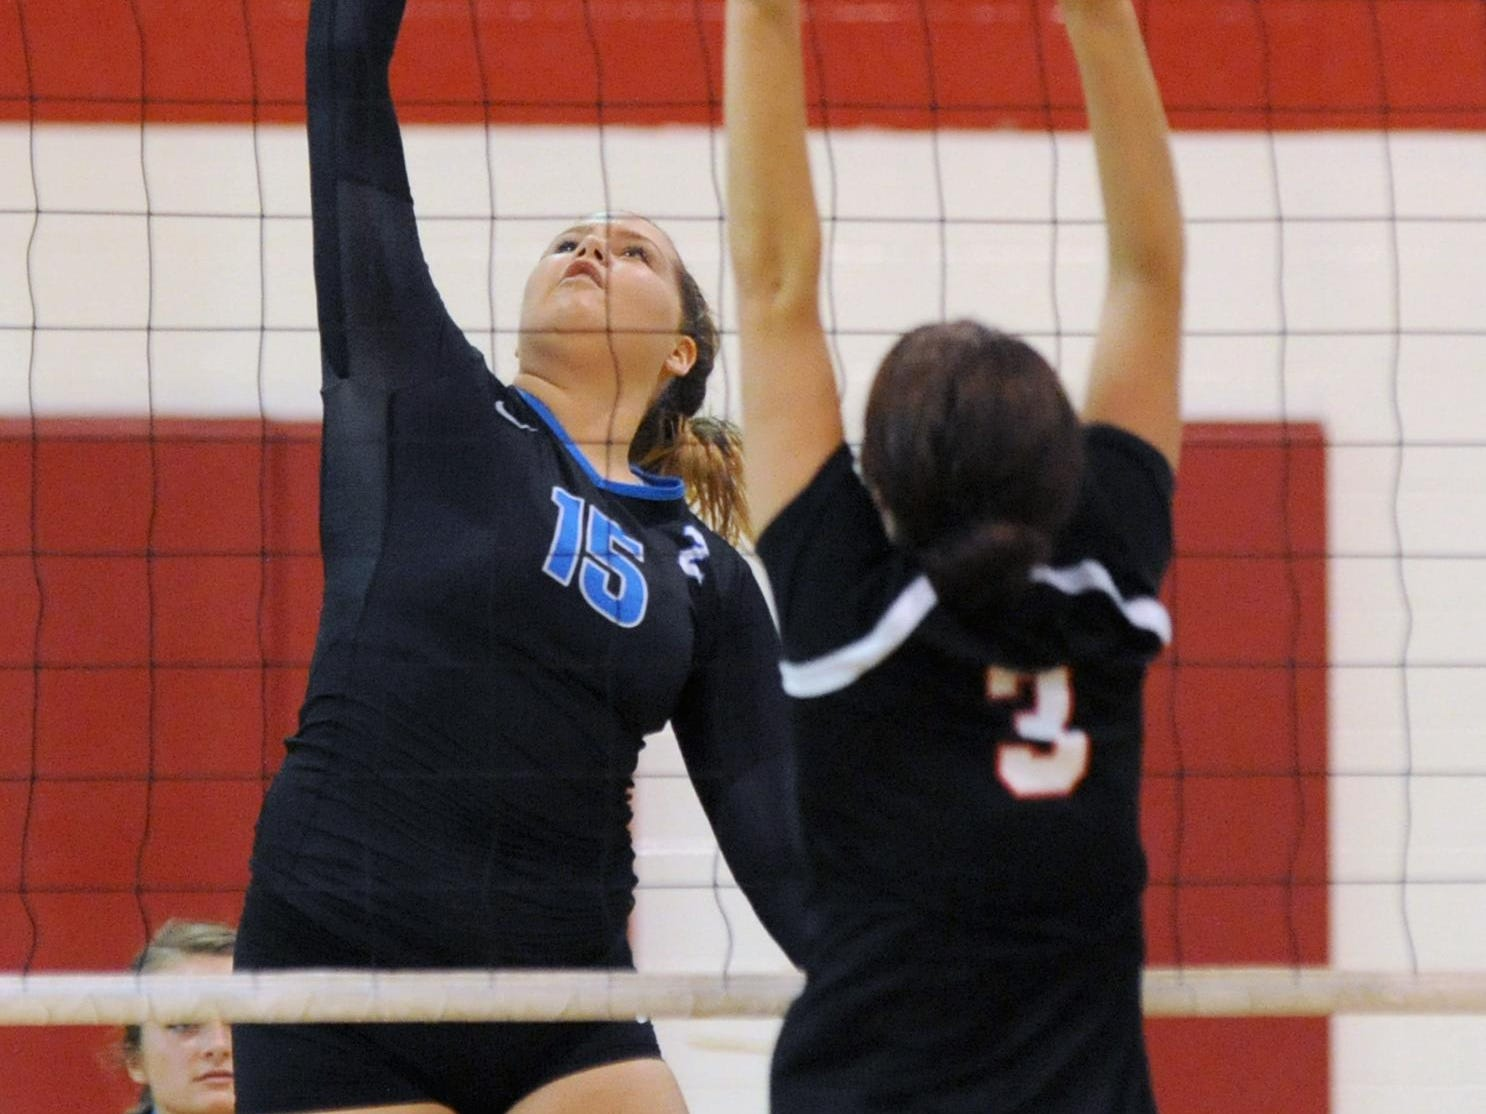 Zanesville's Desiree Blanton spikes the ball past Rosecrans' Emily Nash during a match Thursday at Bishop Rosecrans High School. Zanesville defeated Rosecrans in three sets.